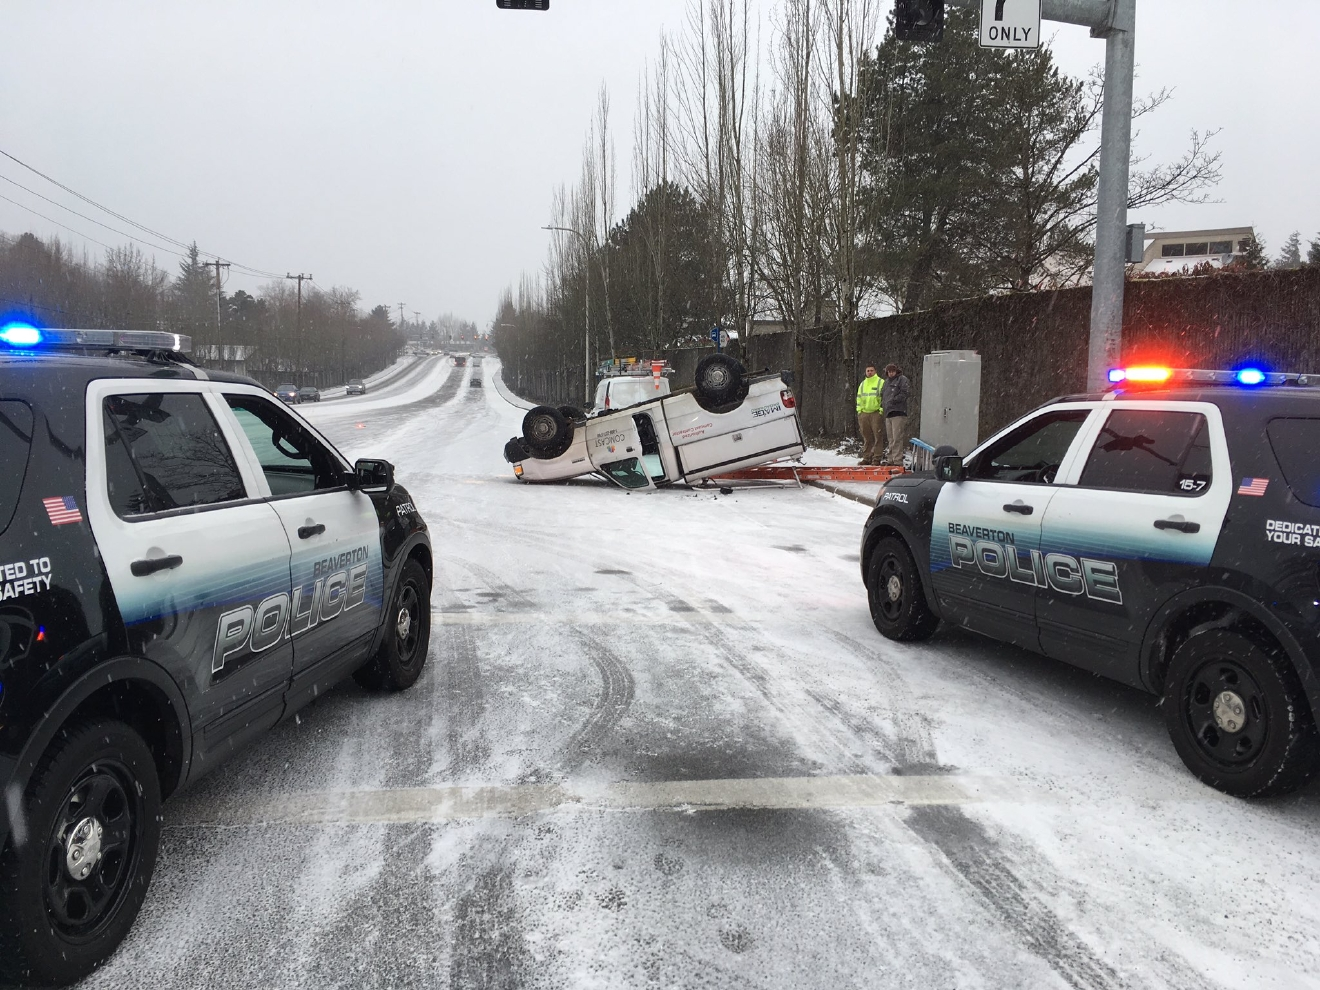 Crash at Conestoga and Scholls Ferrry Road in Beaverton - Beaverton Police photo, January 7, 2017